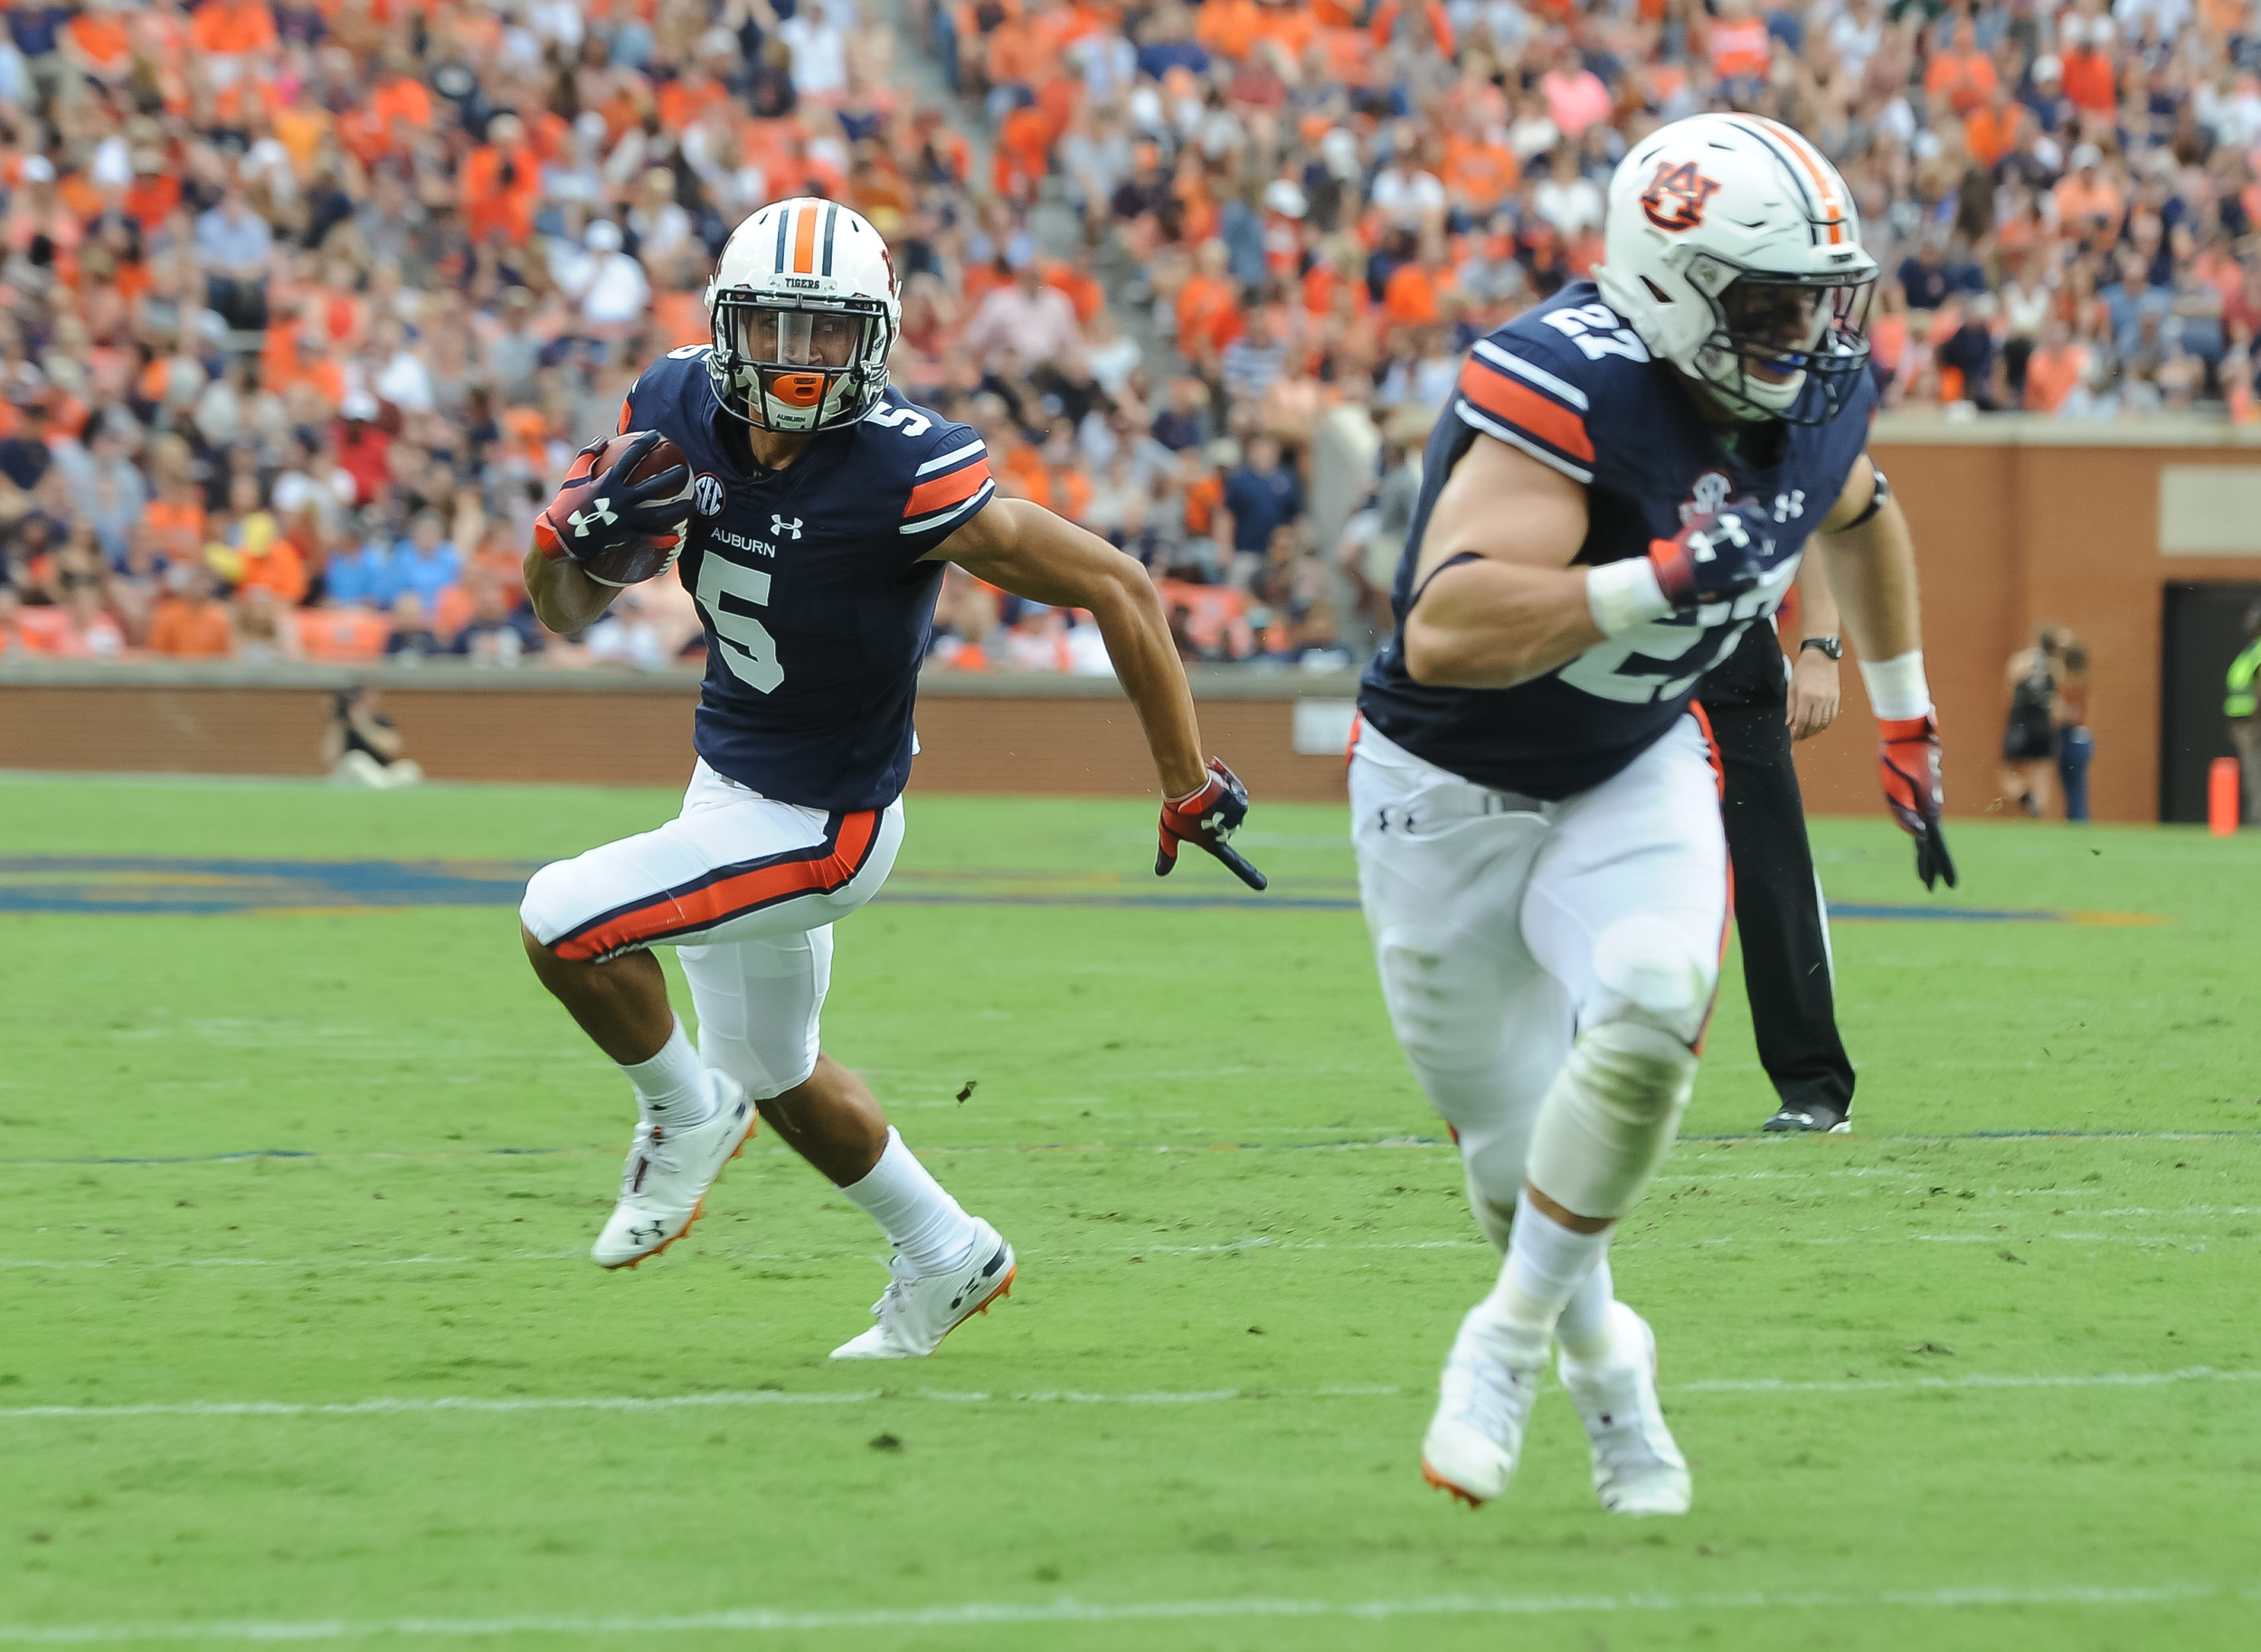 Auburn Tigers wide receiver Anthony Schwartz (5) runs behind the blocking of Auburn Tigers fullback Chandler Cox (27) during the first half of Saturday's game, at Jordan Hare Stadium in Auburn AL. Daily Mountain Eagle -  Jeff Johnsey